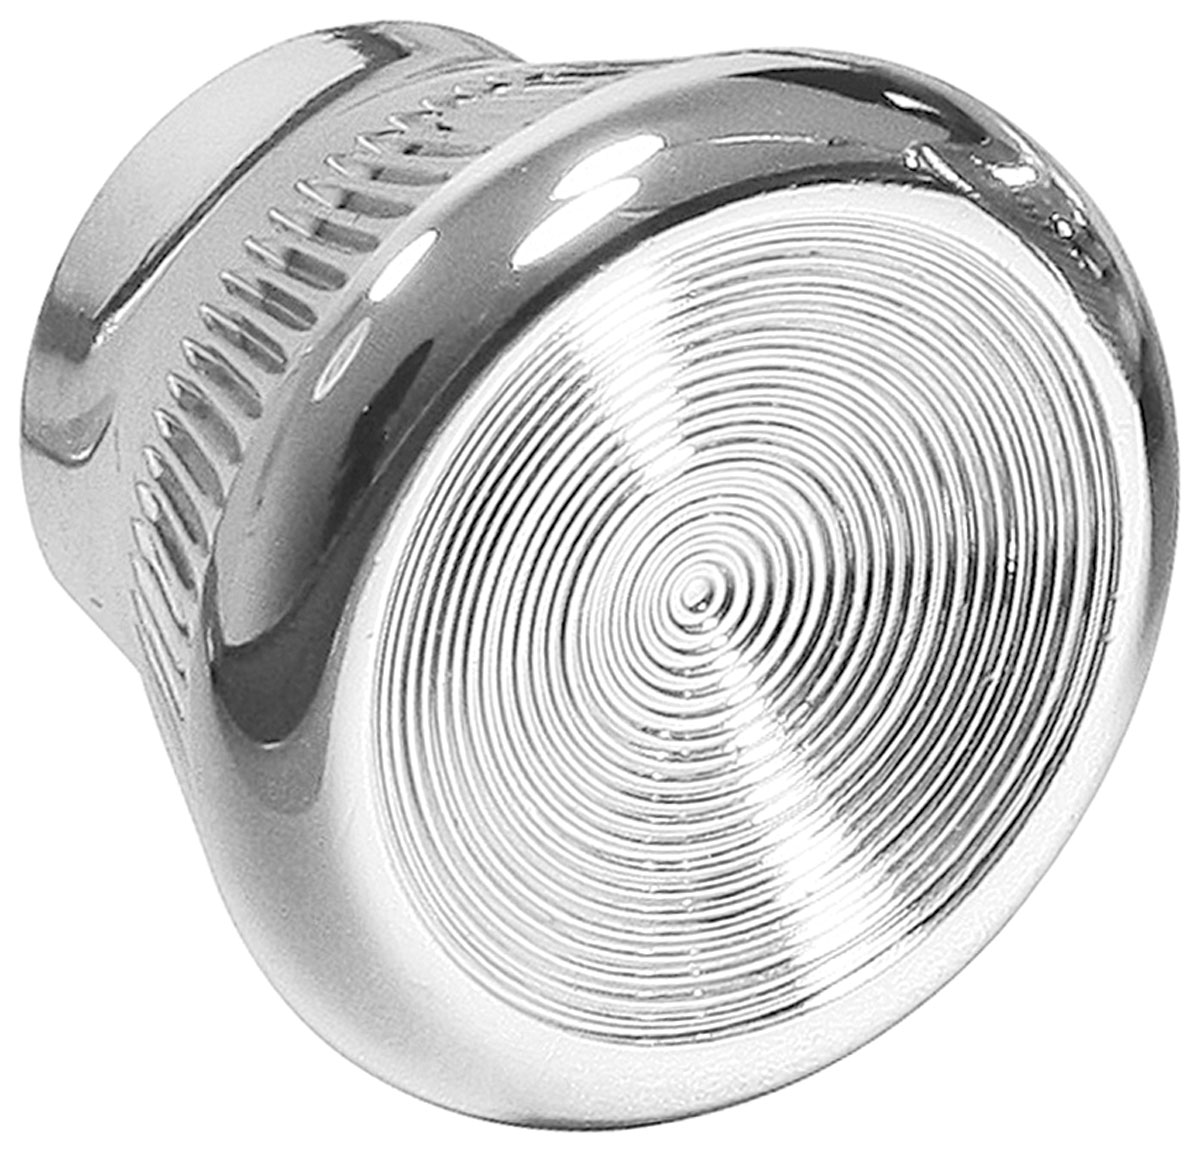 Dash Knob, Chrome, 1967-72 GTO/1969-72 Grand Prix